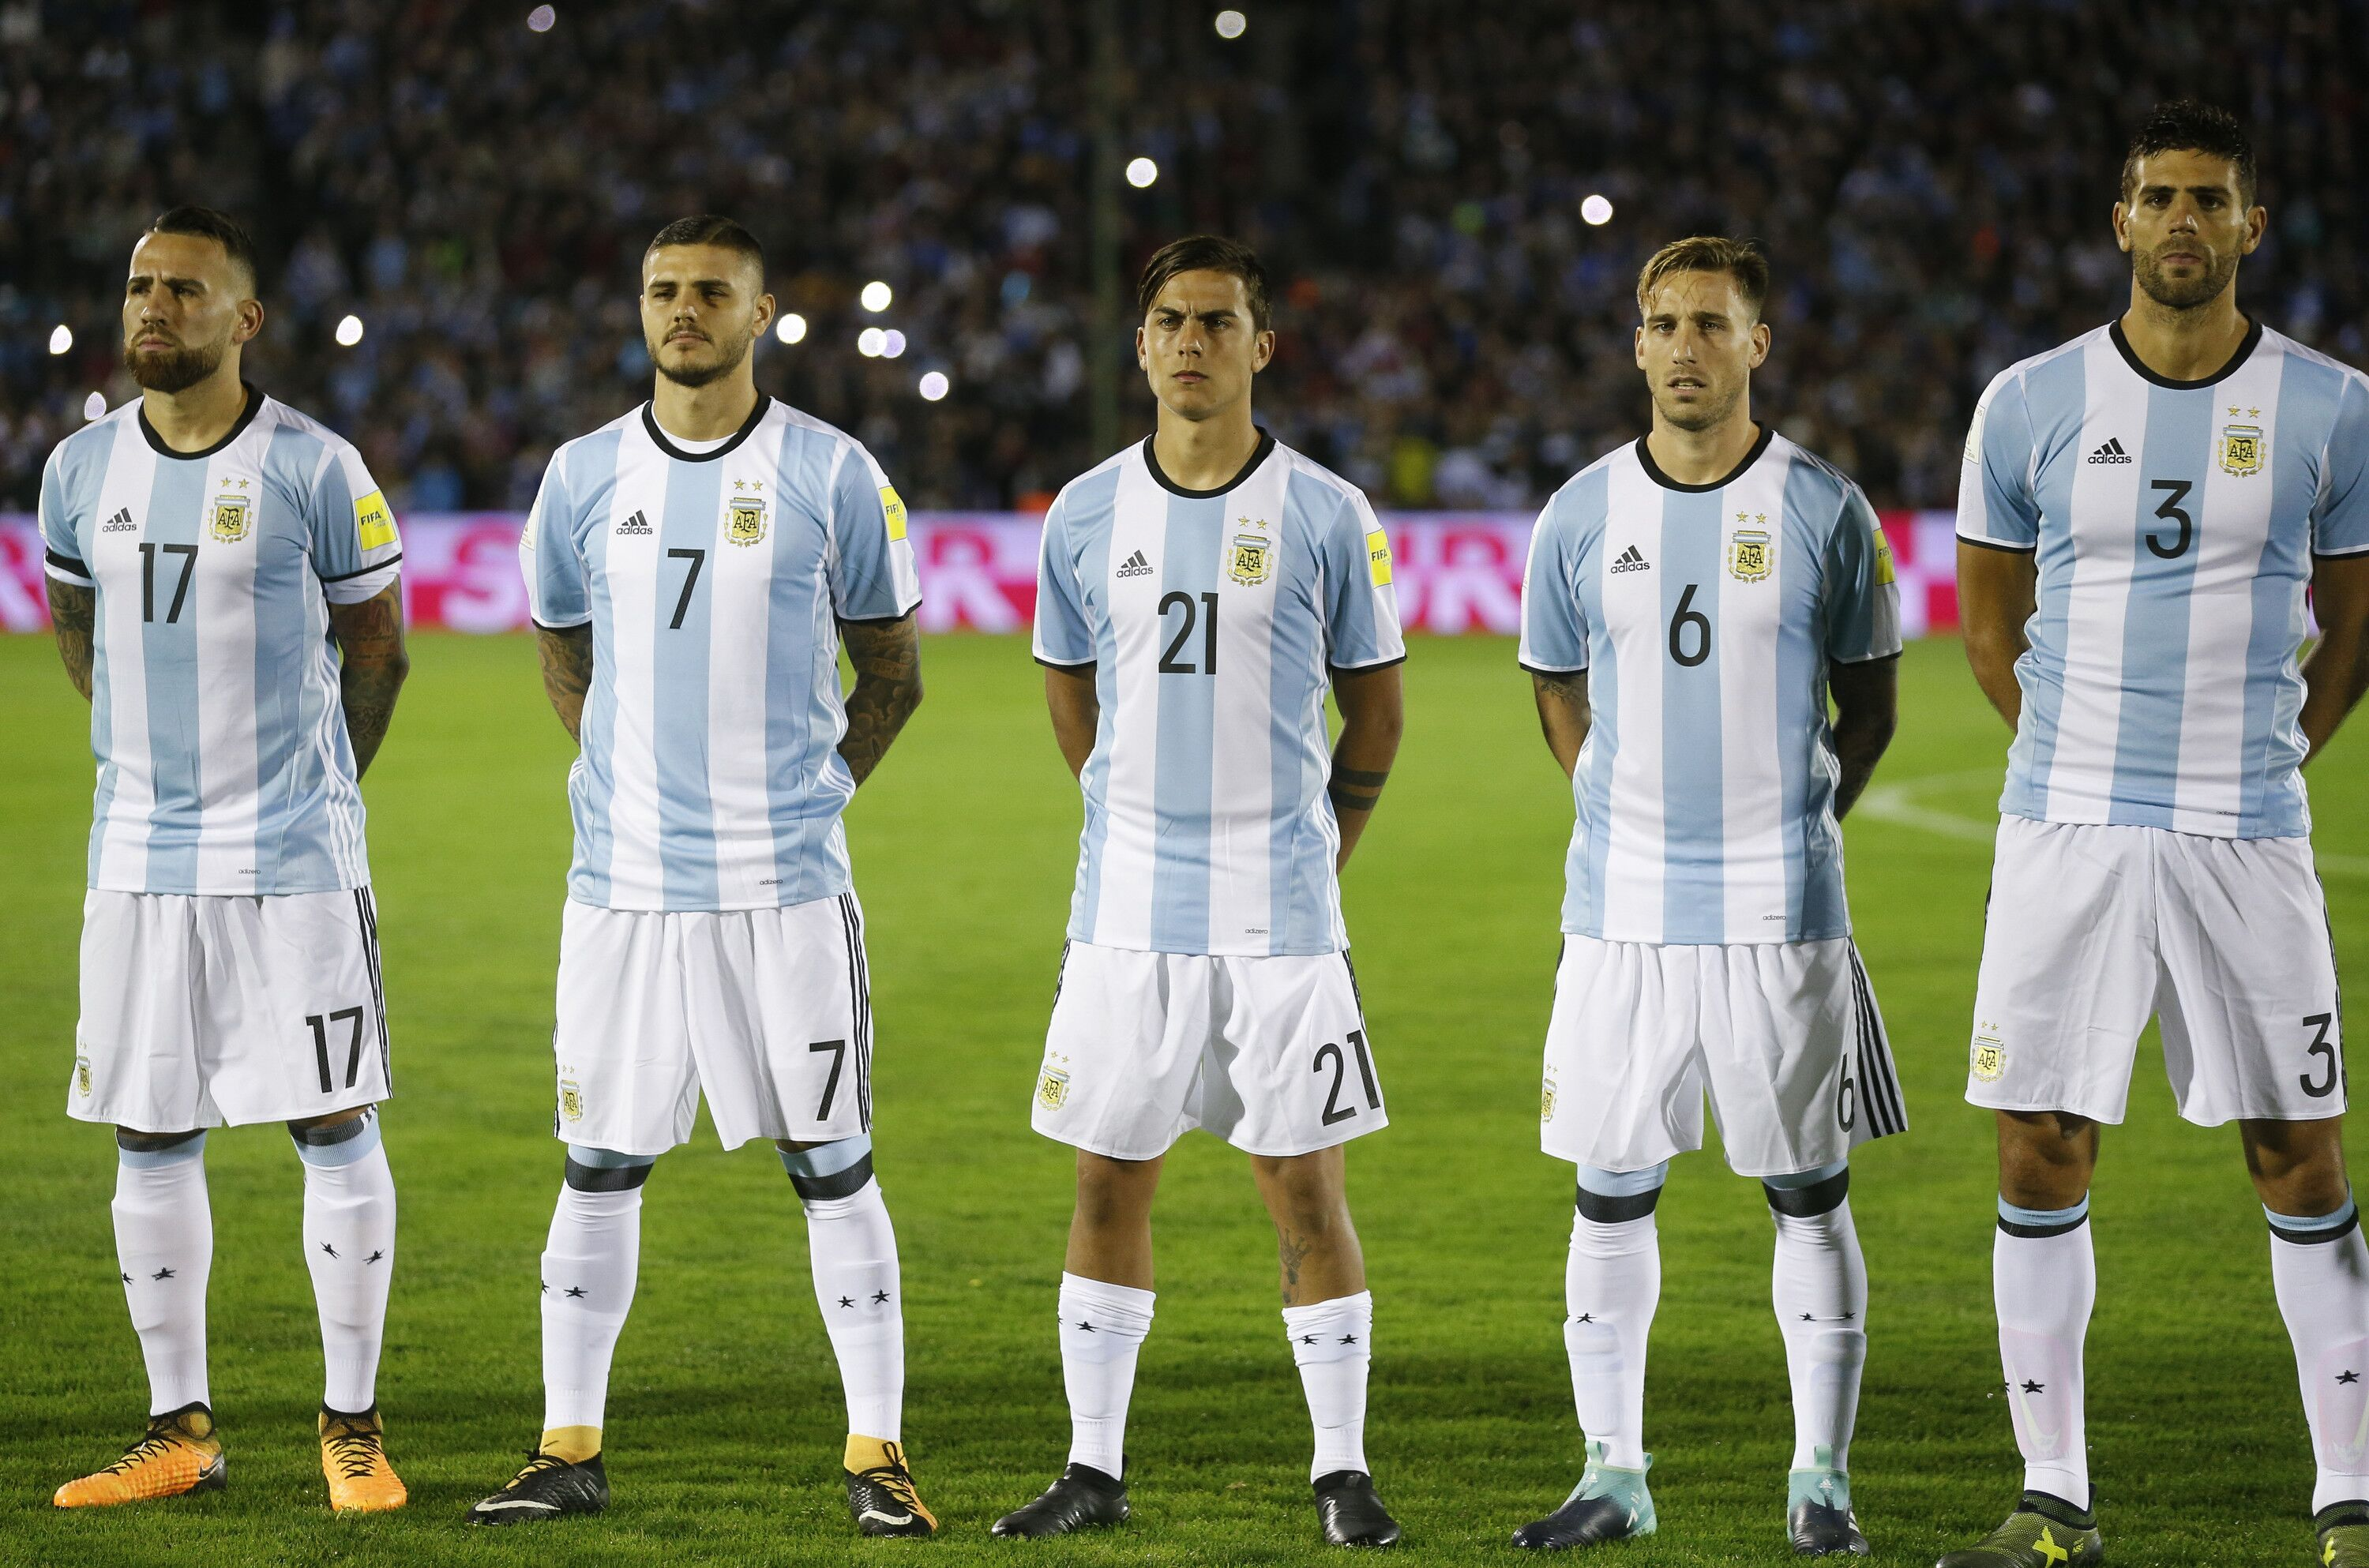 Argentina vs Peru : Expected Starting XI for crucial tie